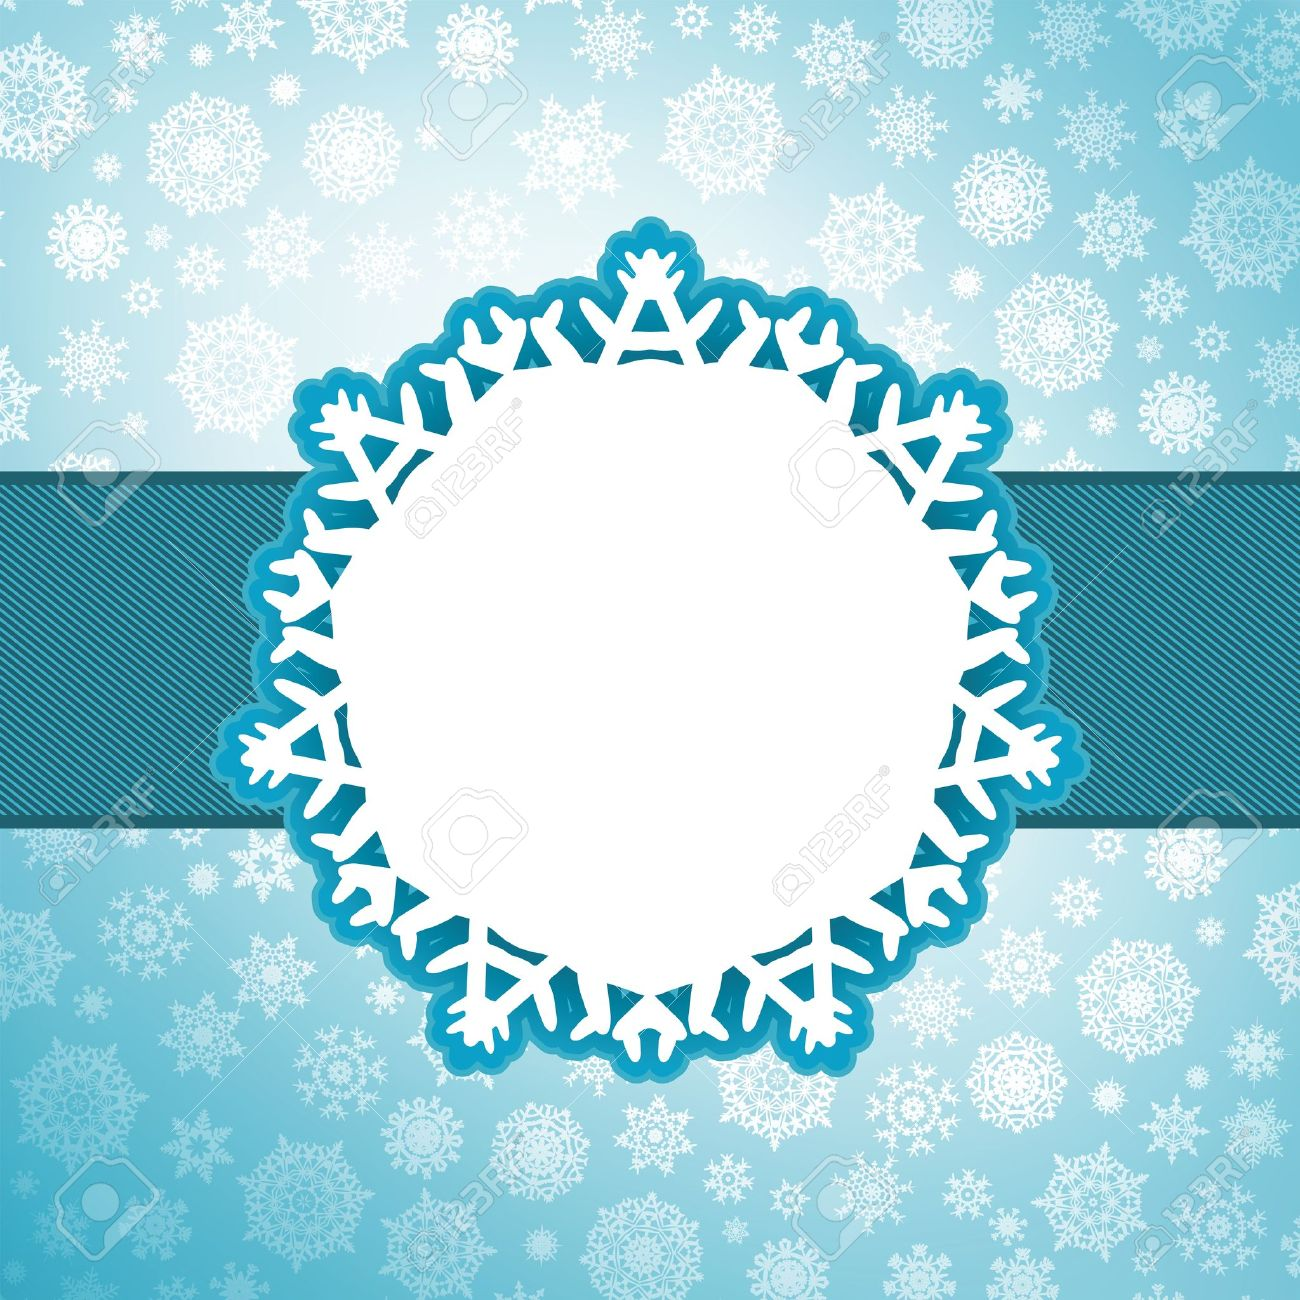 Christmas Background With Copyspace Royalty Free Cliparts, Vectors ...